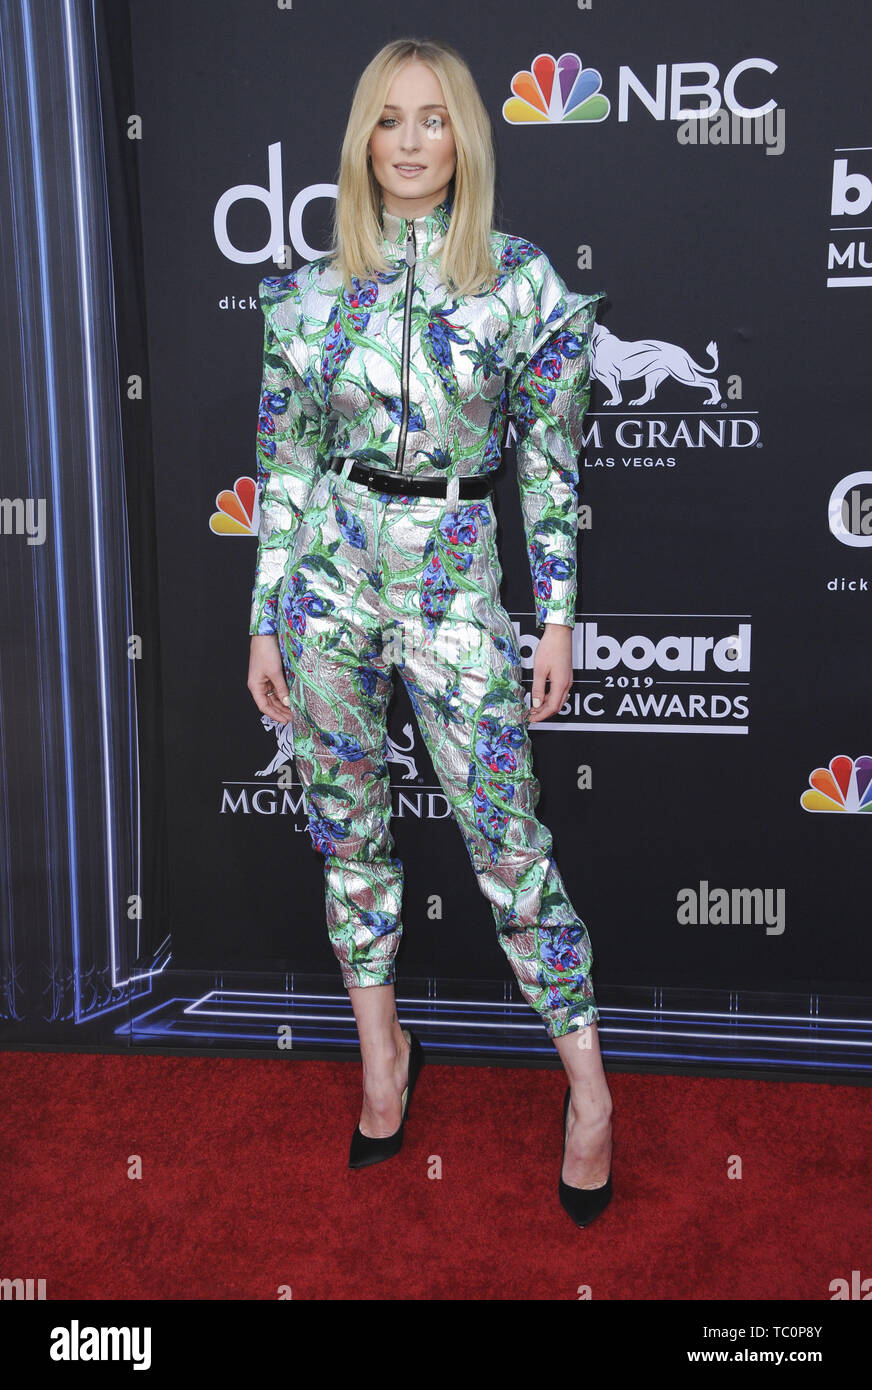 The 2019 Billboard Music Awards Arrivals  Featuring: Sophie Turner Where: Los Angeles, California, United States When: 02 May 2019 Credit: Apega/WENN.com - Stock Image